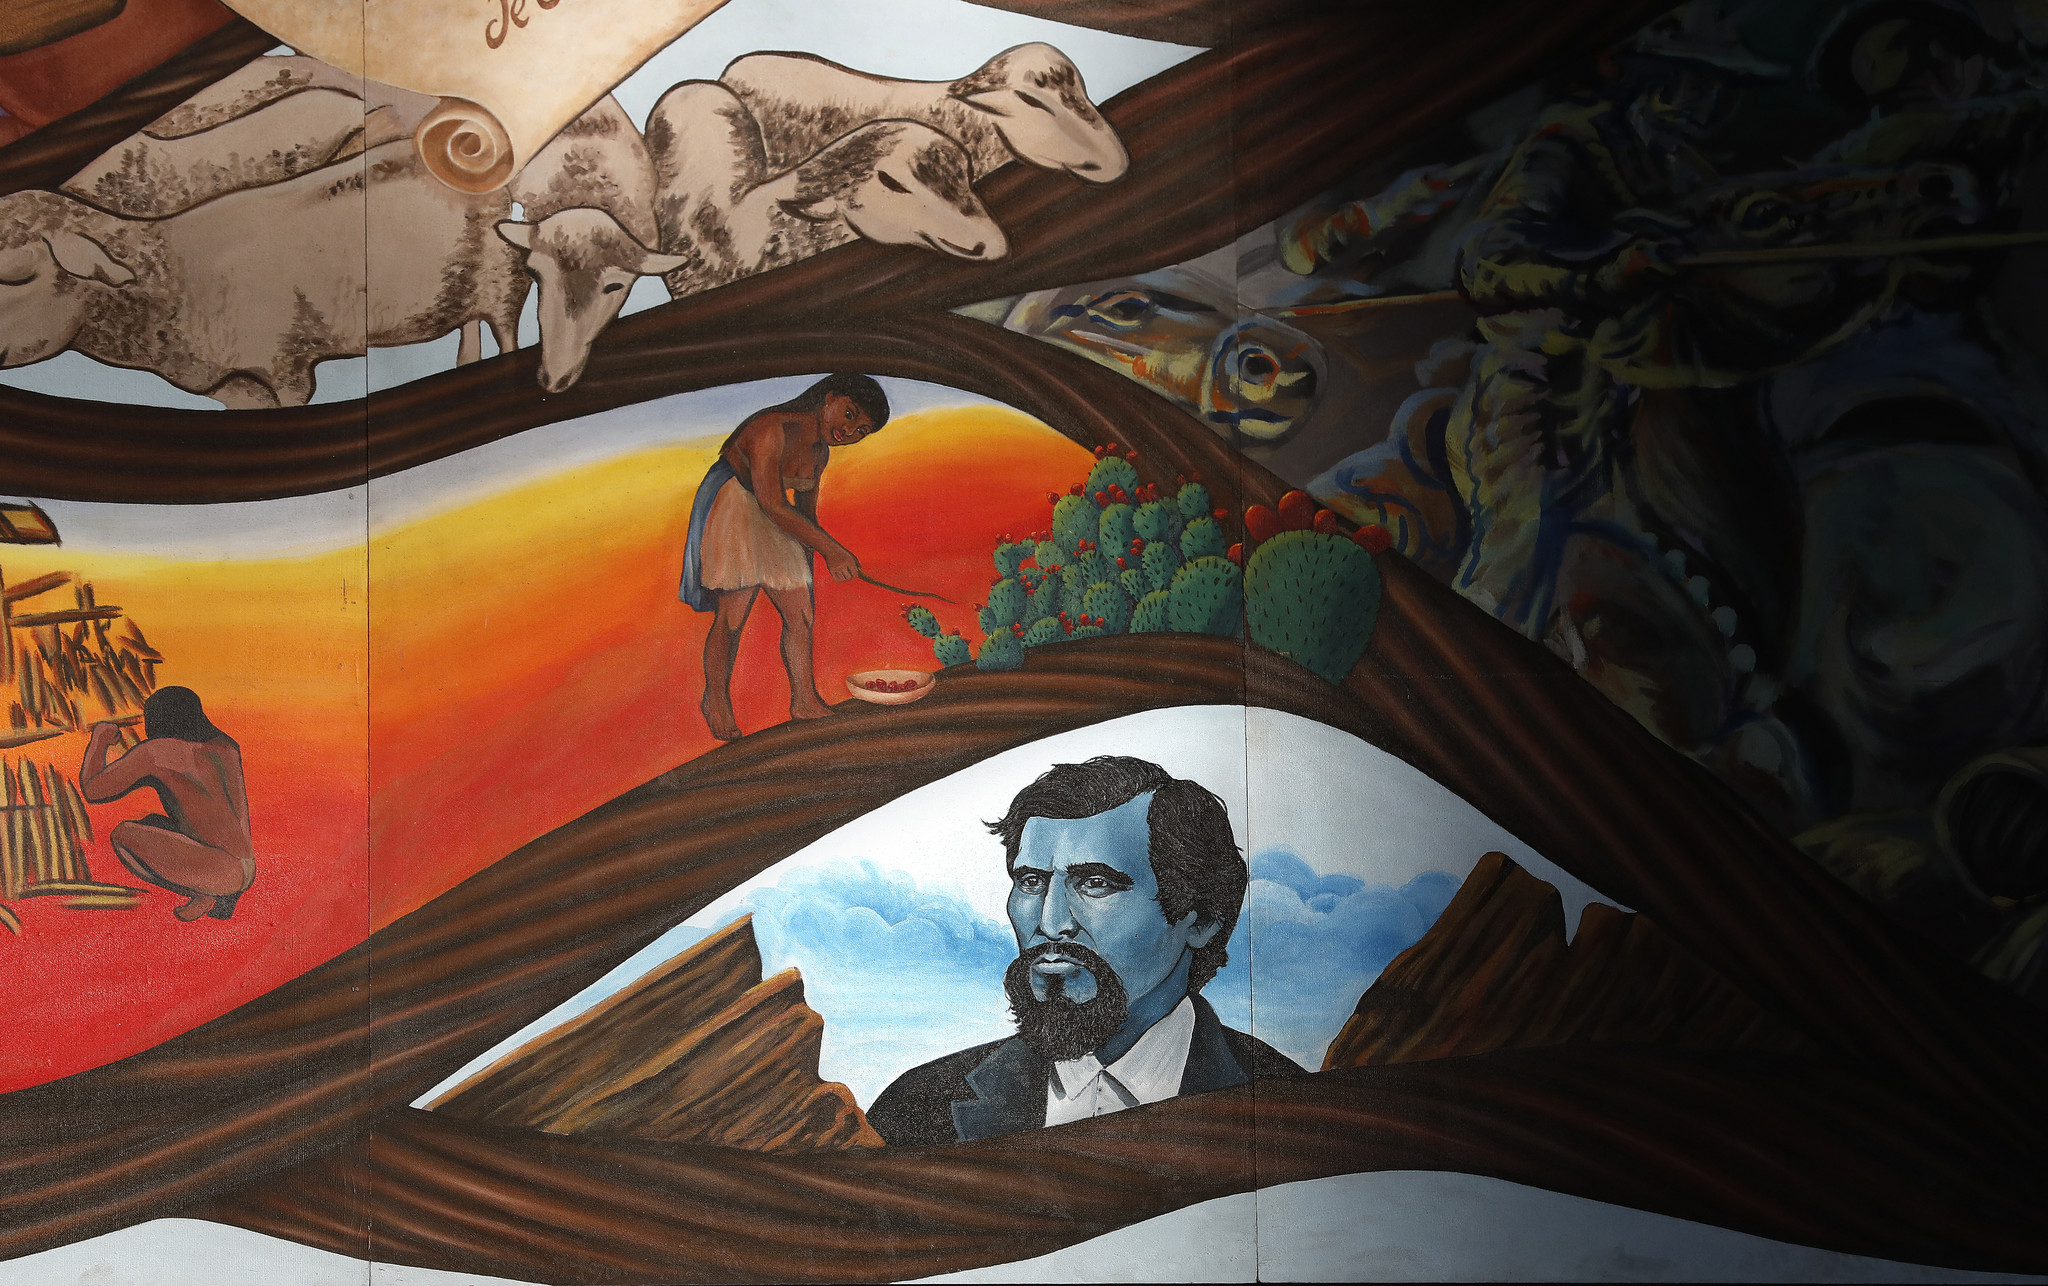 A detail from Carrasco's mural shows 19th century outlaw Tiburcio Vasquez, celebrated by some as a Mexican Robin Hood, and Vasquez Rocks.